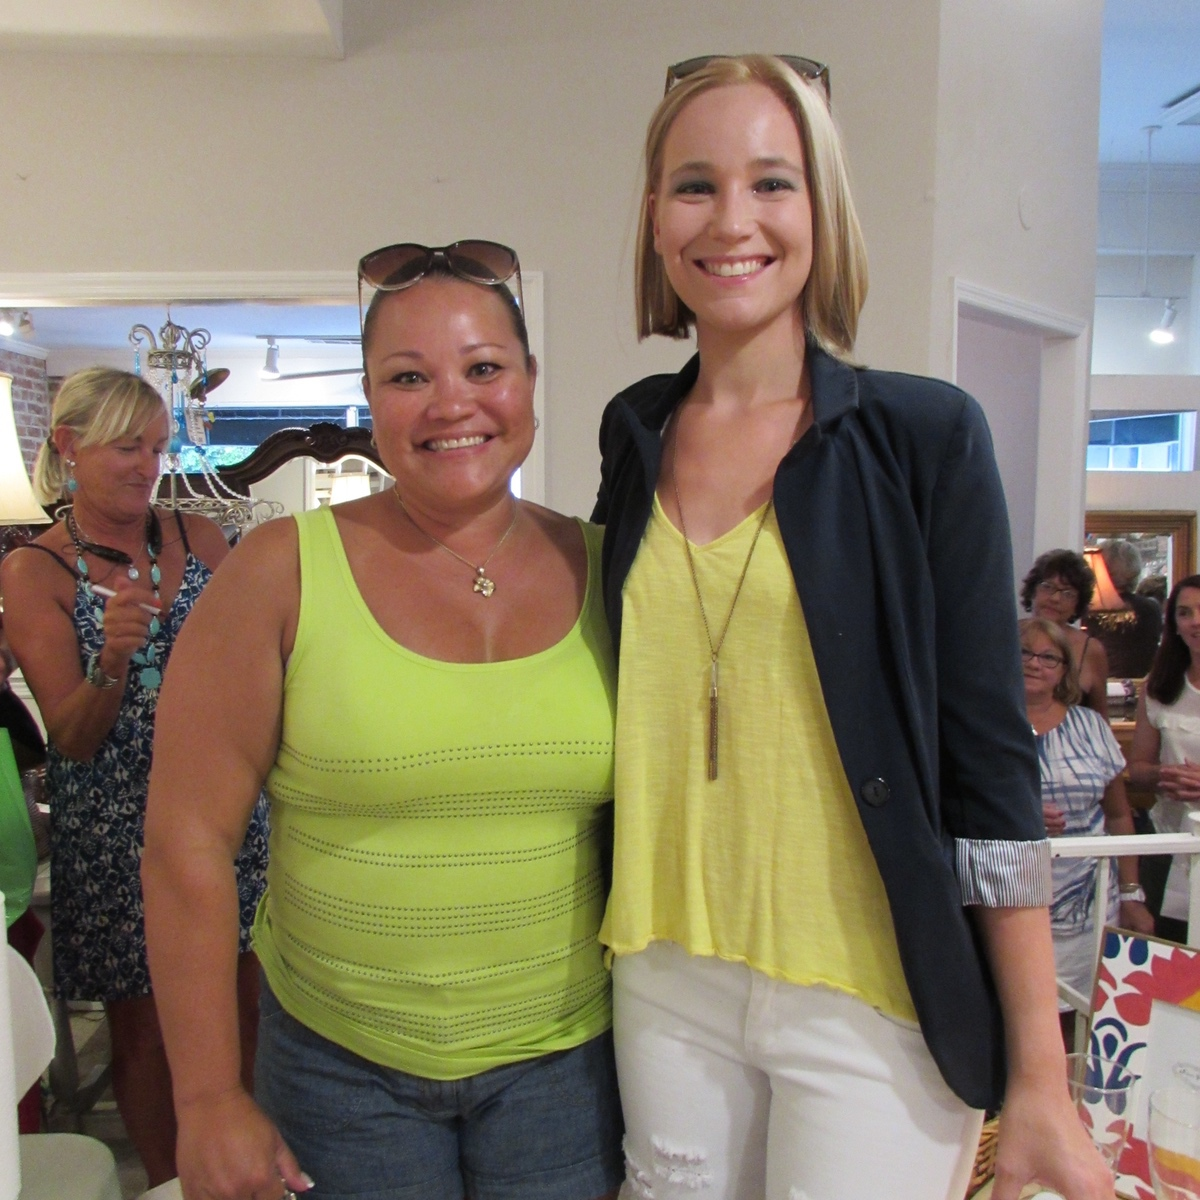 Barbara Kilgore won a GoFlex Training package. She is shown here with owner Amber Bonem.